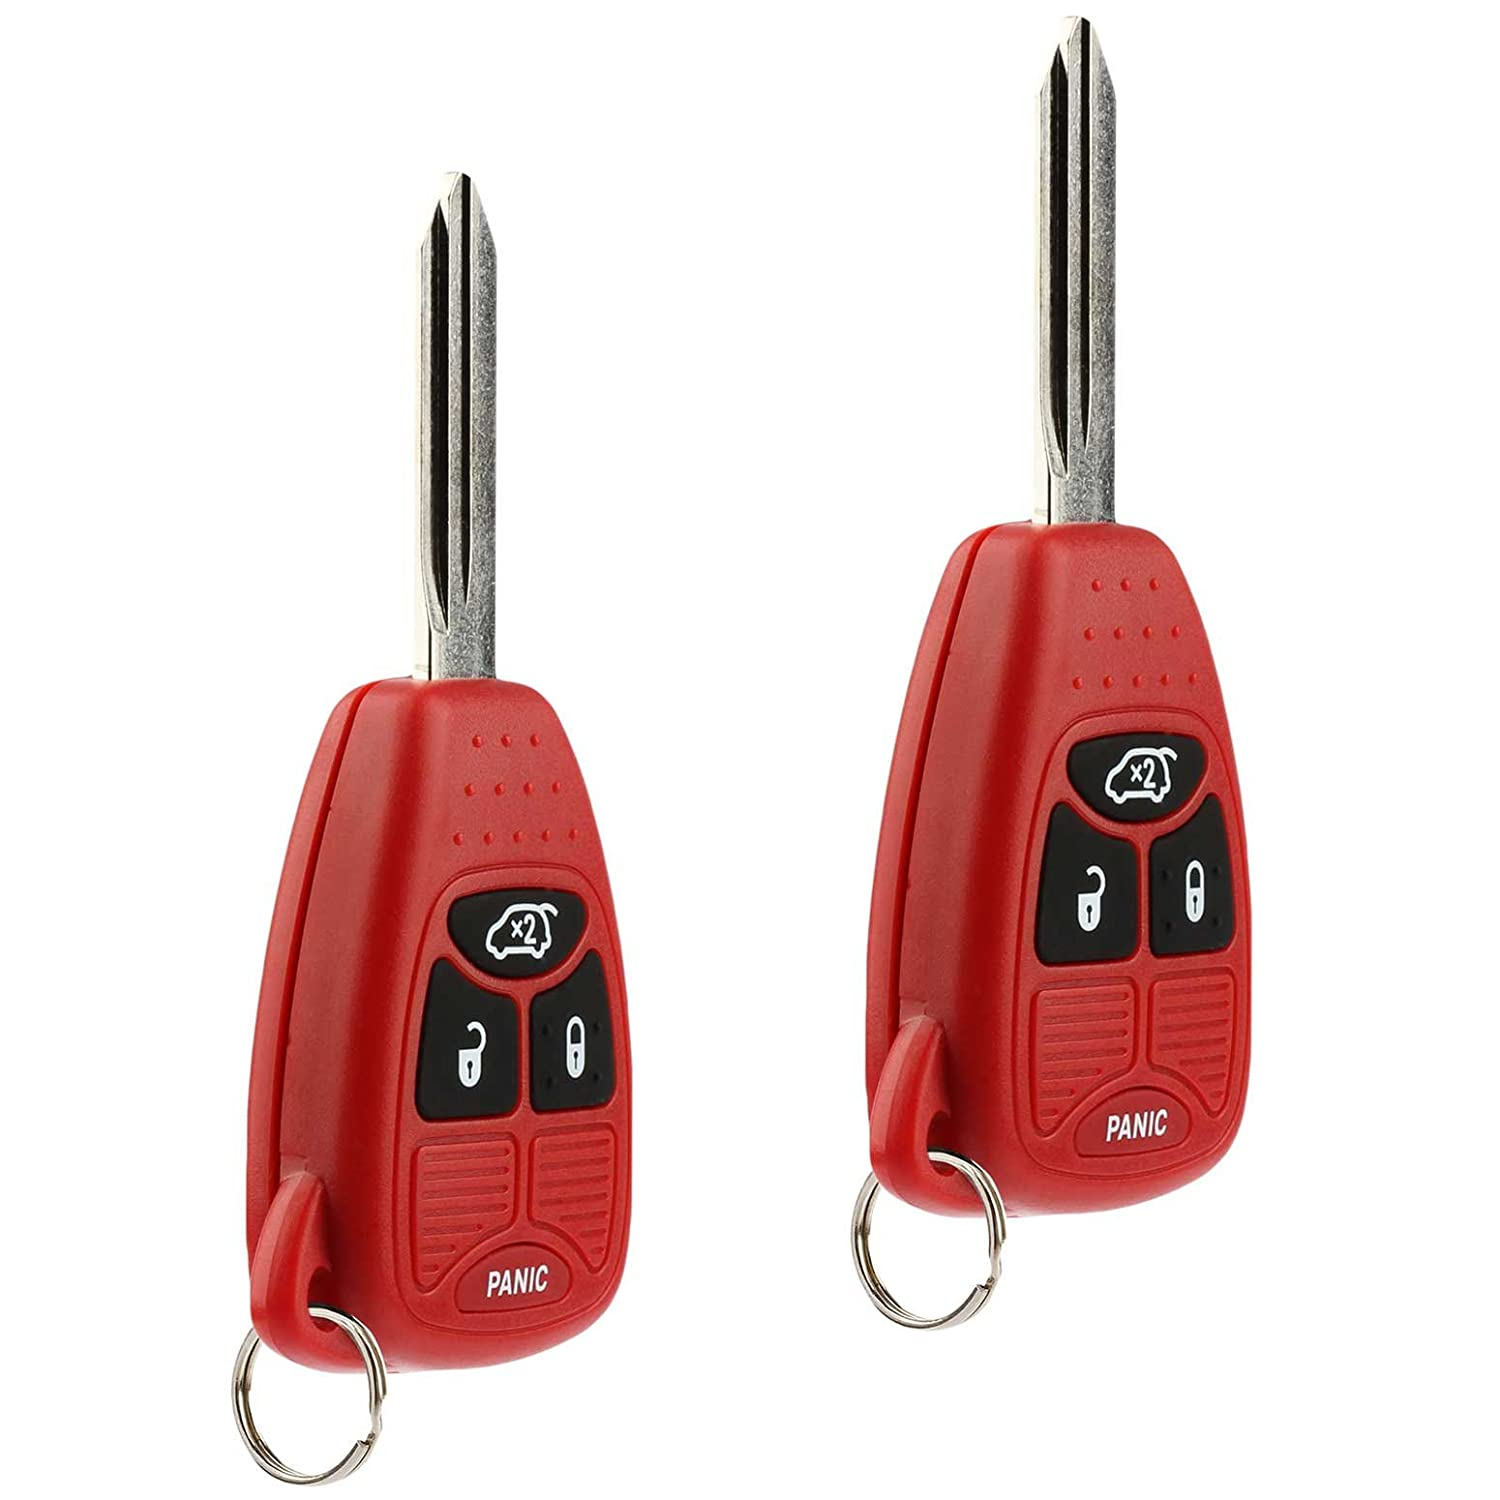 Set of 2 USARemote Key Fob Keyless Entry Remote fits Chrysler 200 300 300c PT Cruiser Sebring // Dodge Avenger Charger // Jeep Commander Grand Cherokee Liberty Red